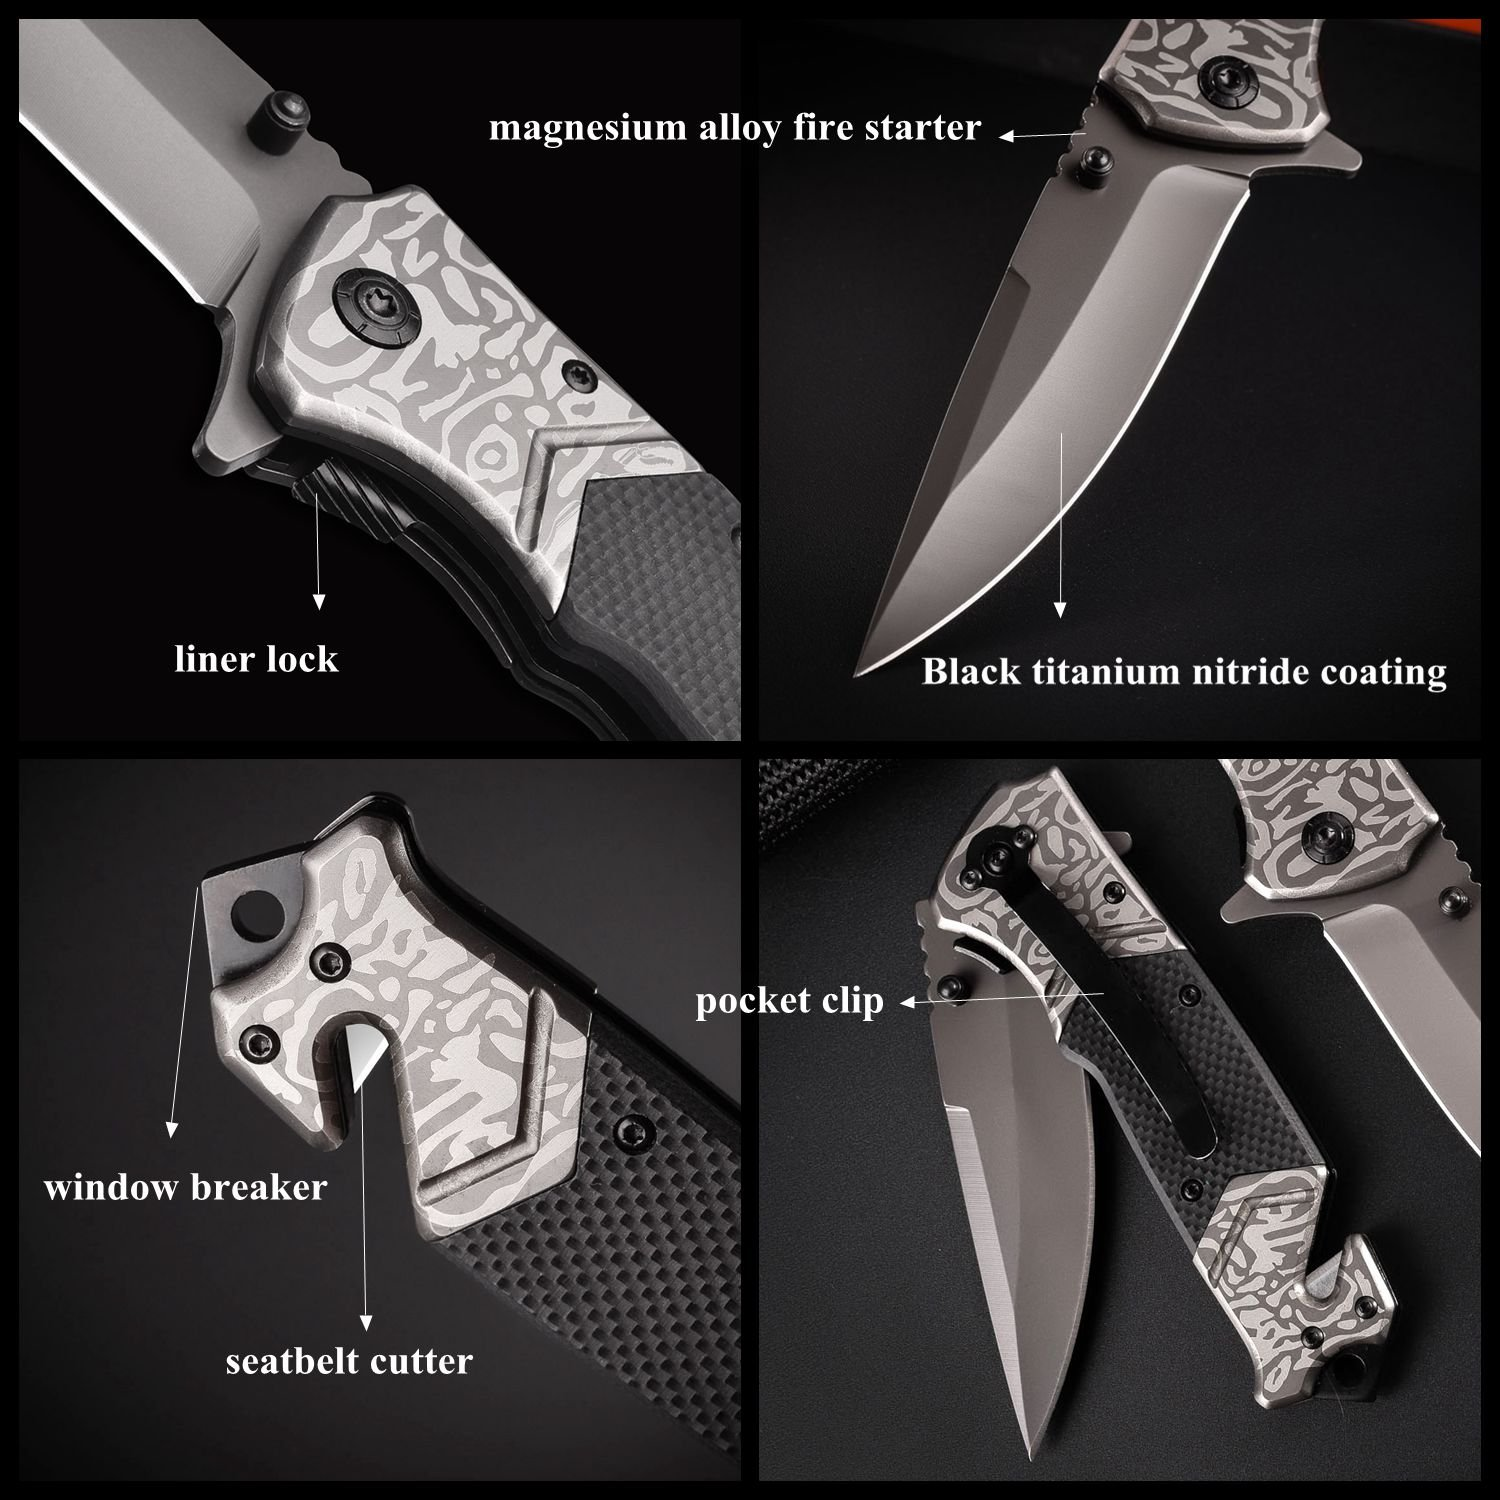 SMTENG 8in Stainless Steel folding Knife With pattern Antiskid G10 handle,Outdoor Tactical Survival EMT EDC Knife,Easy closing Liner Lock Everyday Carry Pocket Knife With Clip,5 inch close black by SMTENG (Image #6)